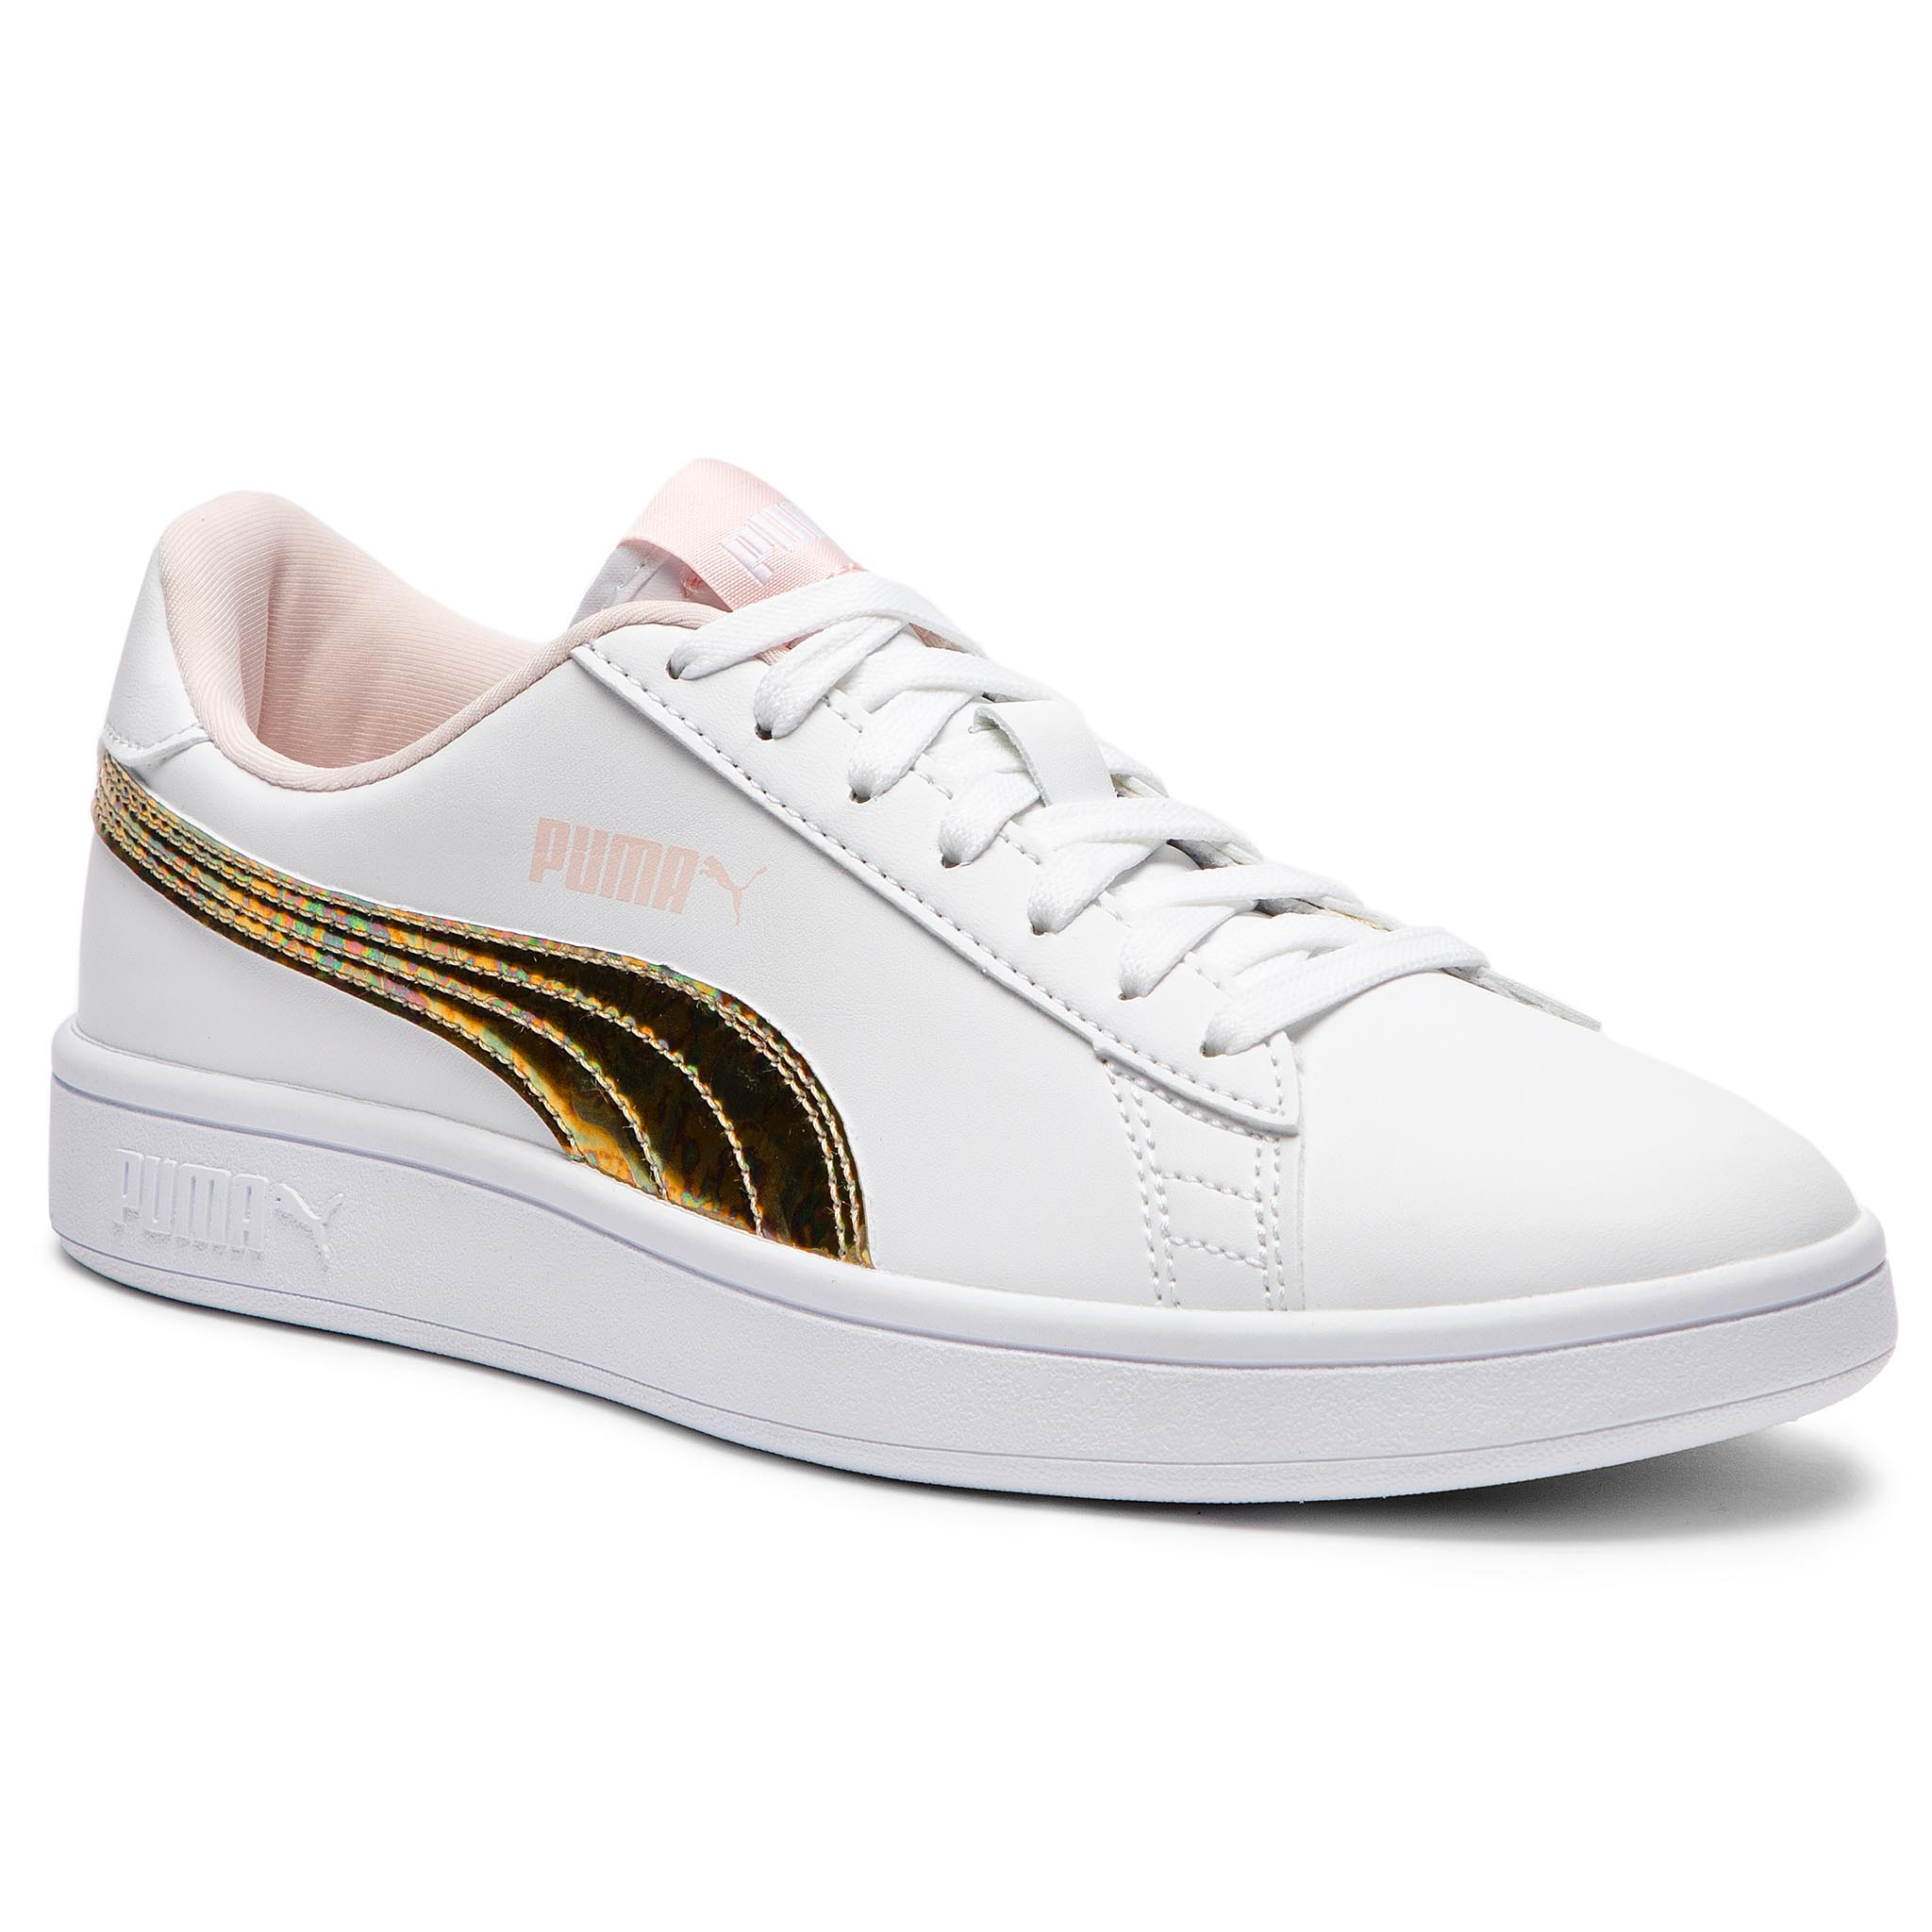 Sportcipő PUMA - Smash v2 Mermaid Jr 365206 01 Puma White Pearl ... 4f12fbe606